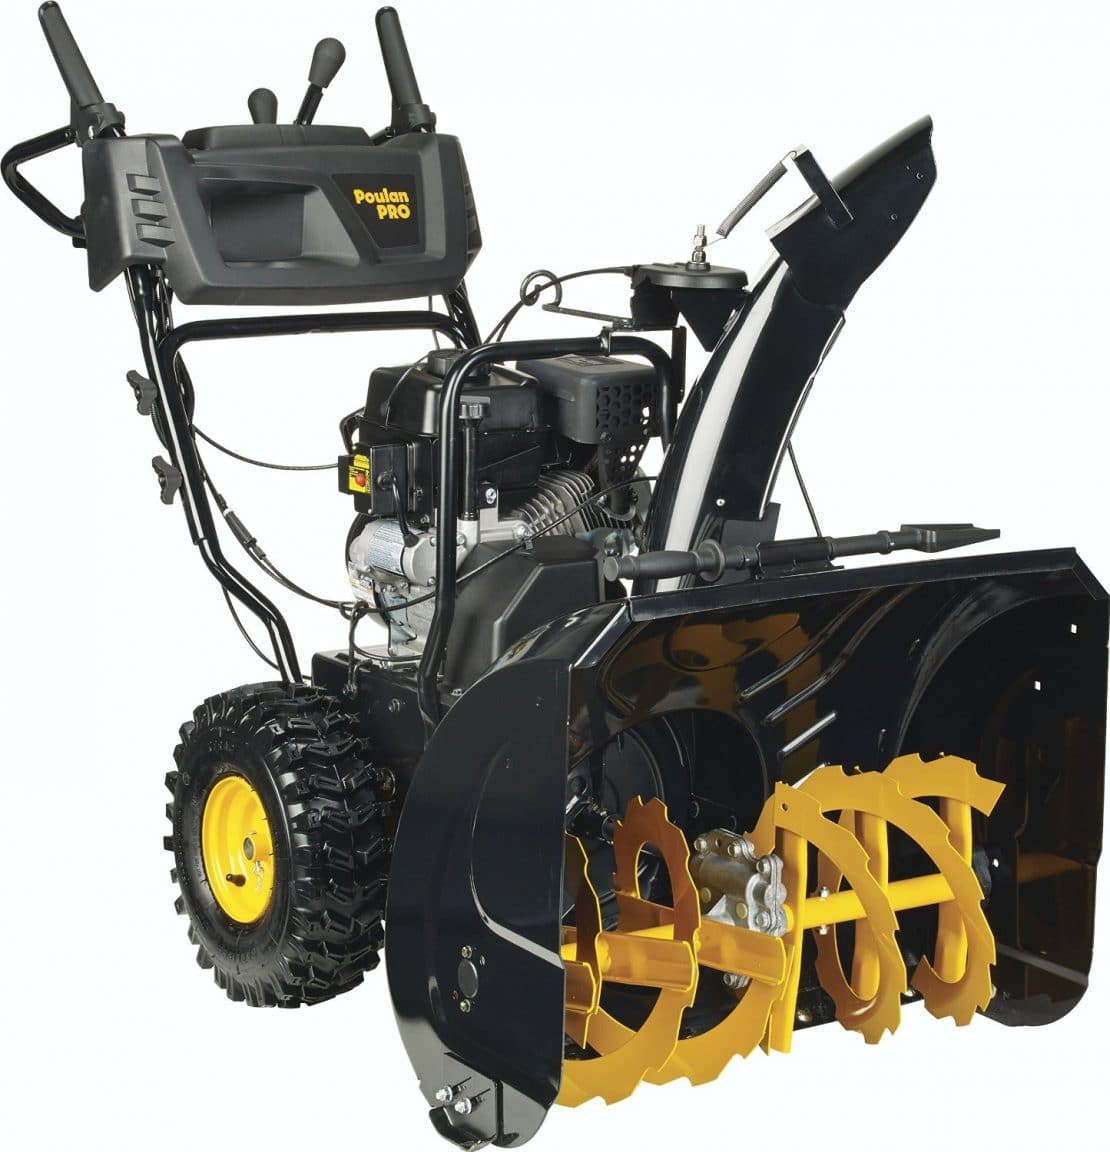 Snow Blower 24 >> 2015 Poulan Pro 2-Stage Snow Blowers - My Review ...